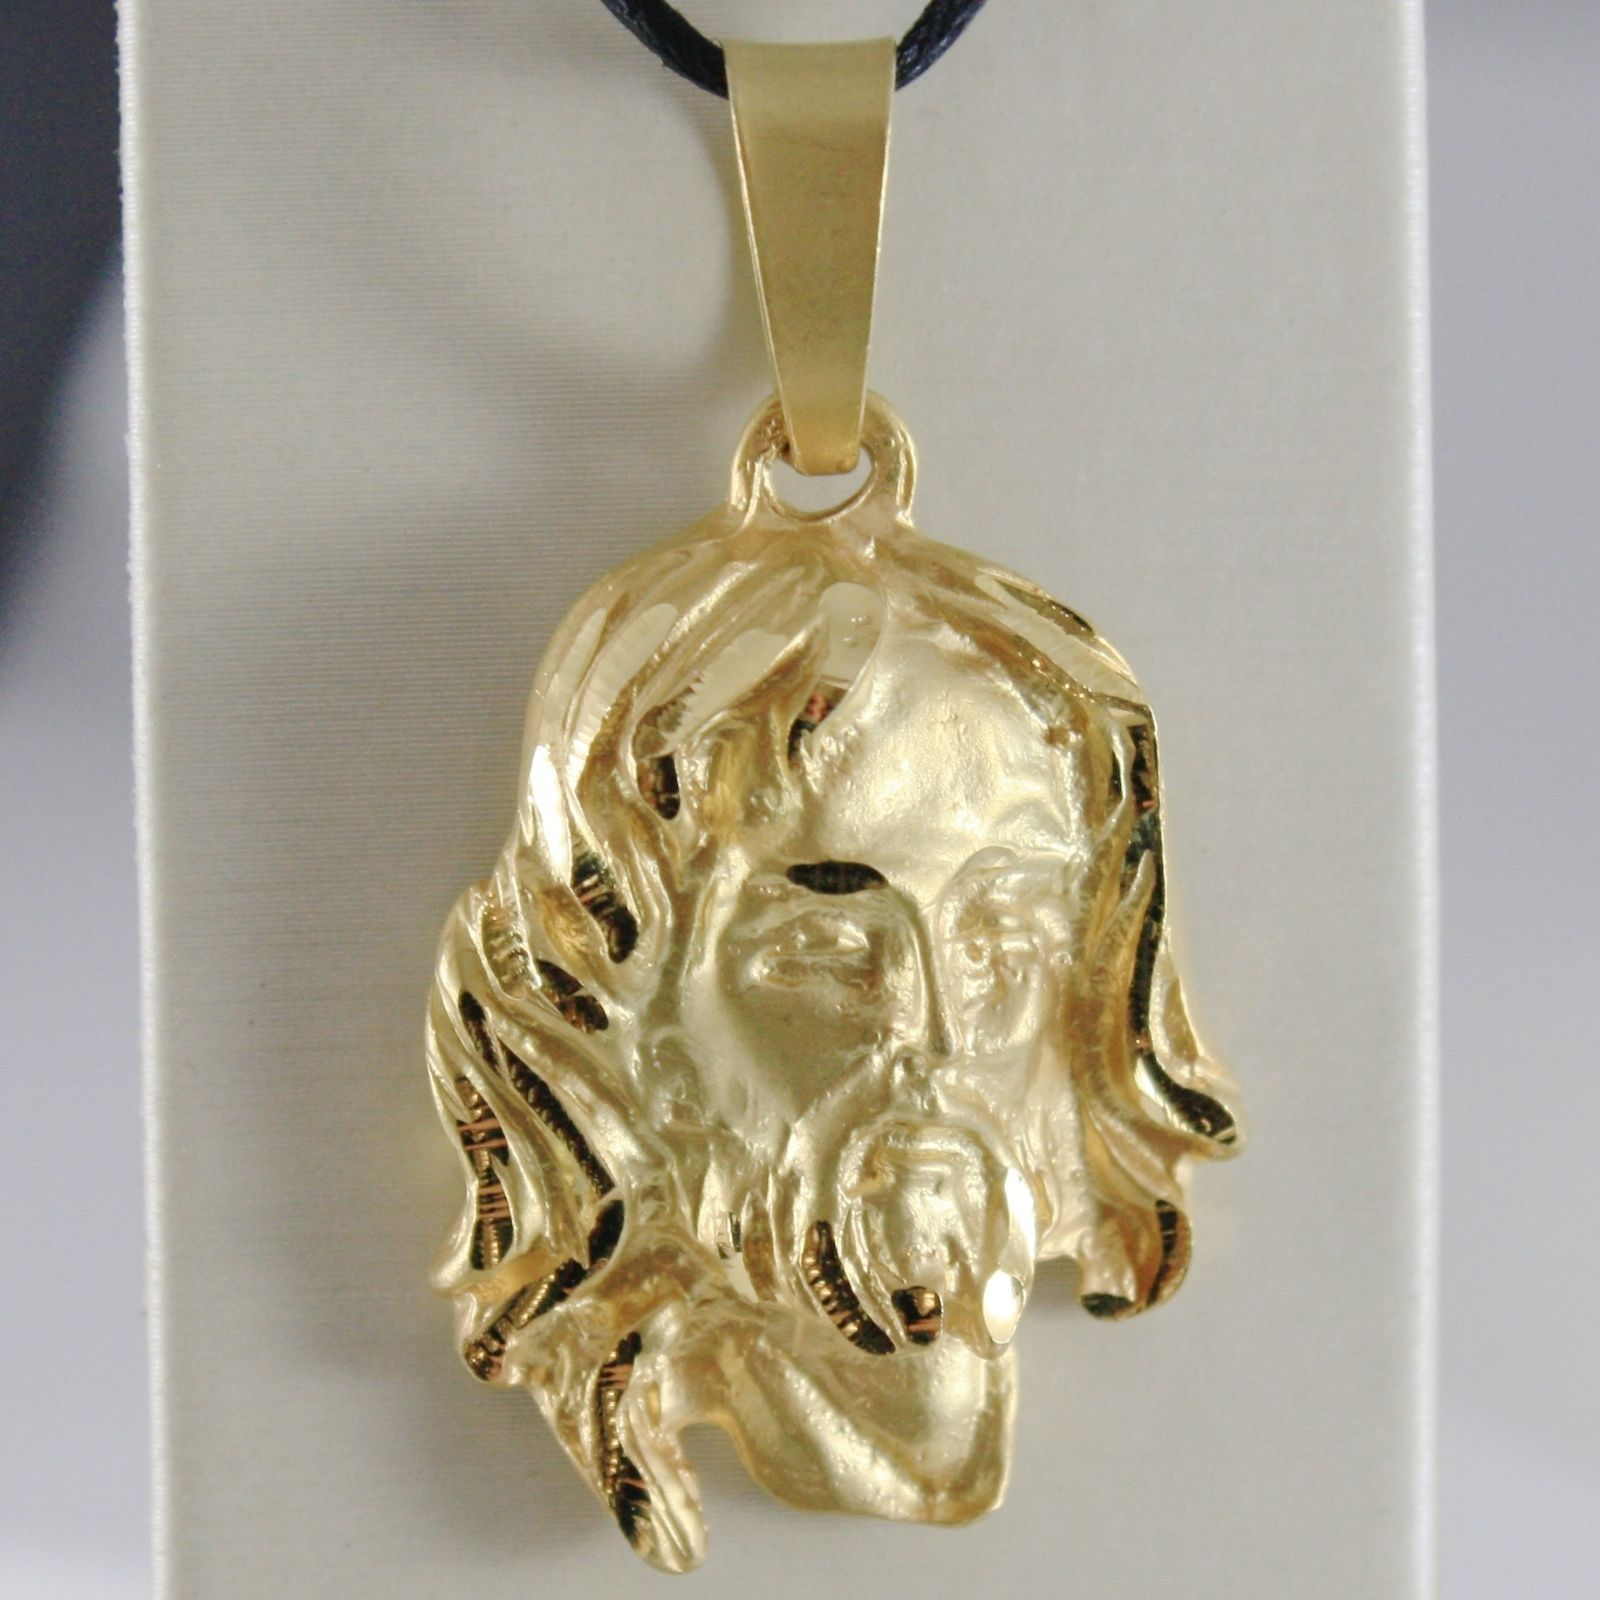 18K YELLOW GOLD JESUS FACE PENDANT CHARM 45 MM, 1.8 IN, FINELY WORKED ITALY MADE